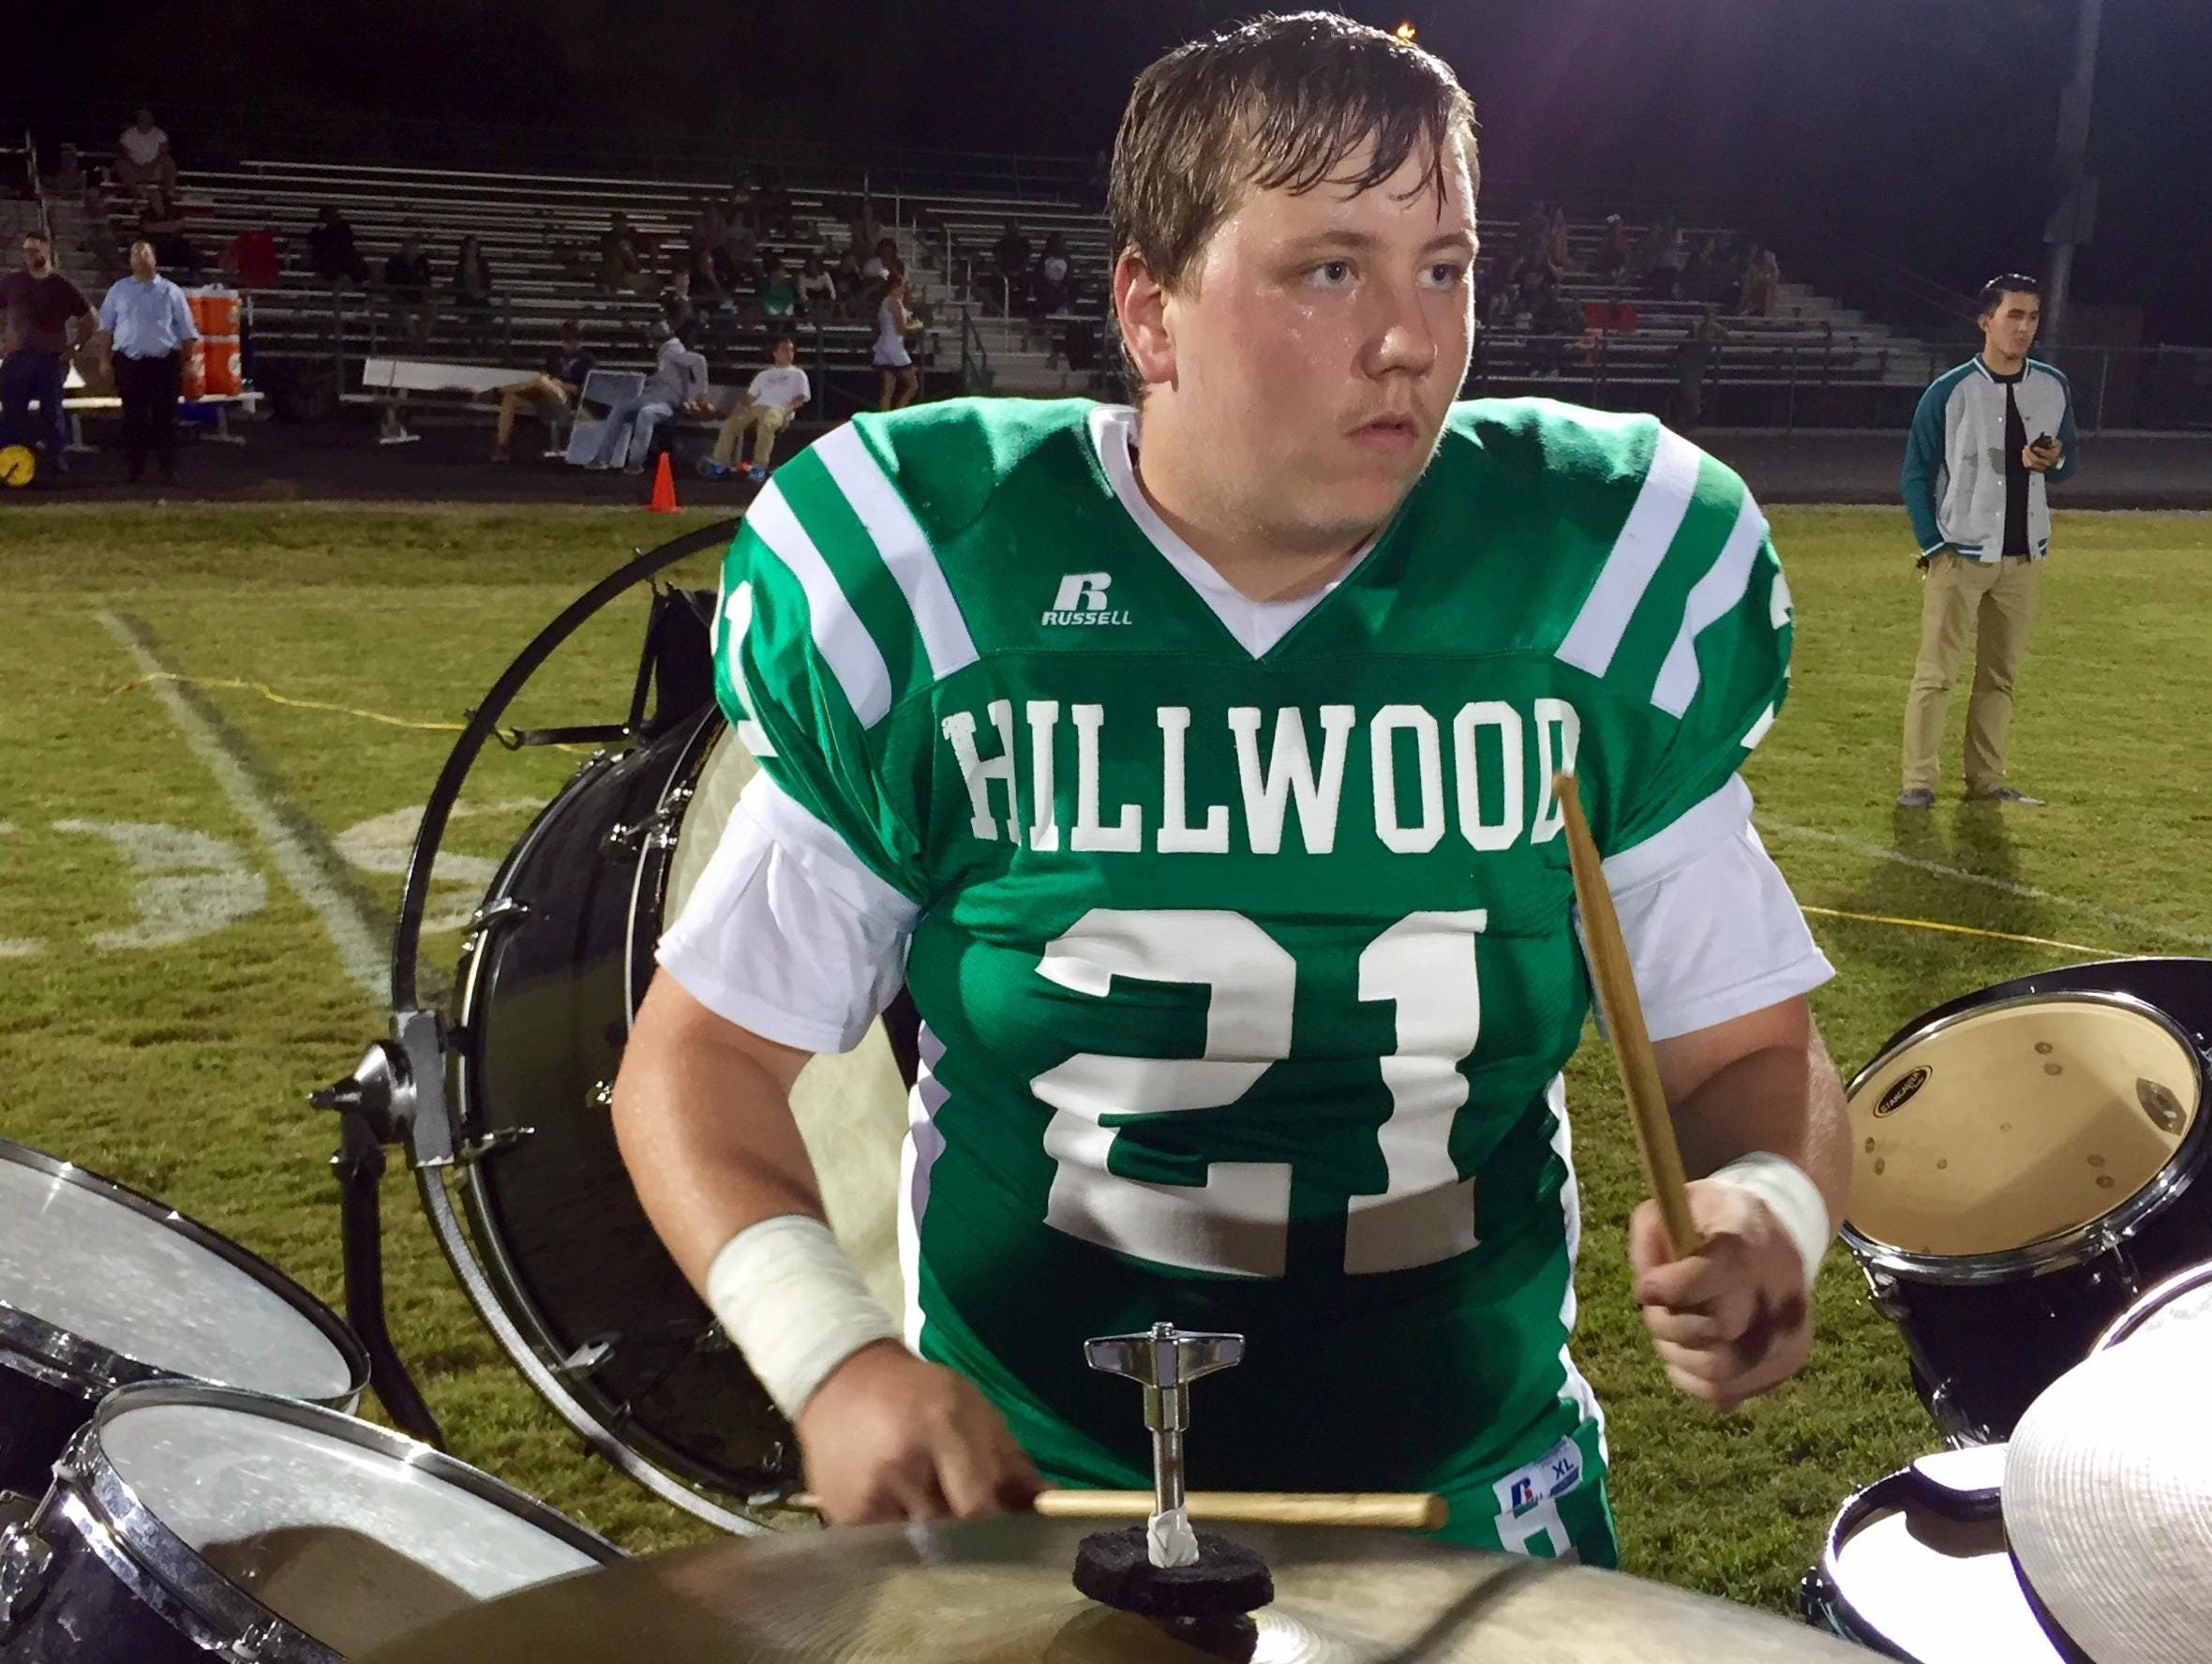 Haskell Sexton, a junior on the Hillwood football team, also plays a full set of drums during halftime with the Hilltopper marching band.